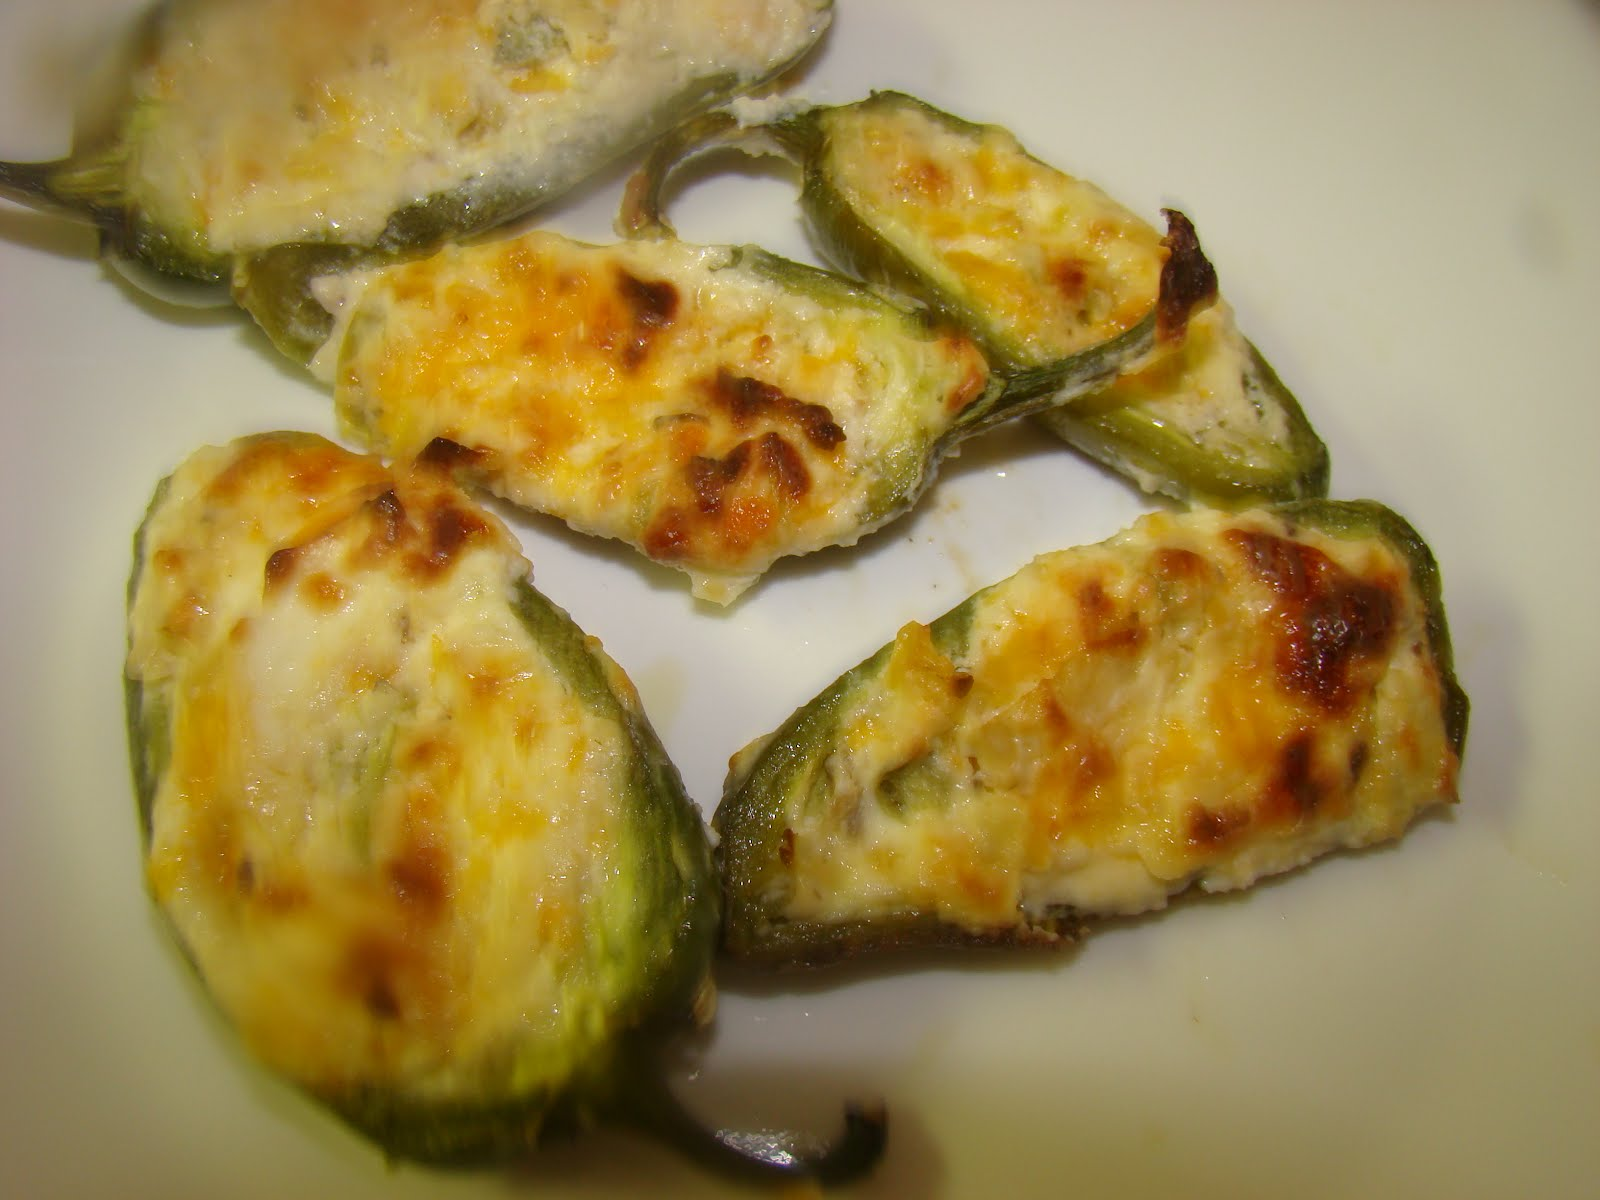 My Favorite Recipes Collection: Baked/Broiled Stuffed Jalapenos